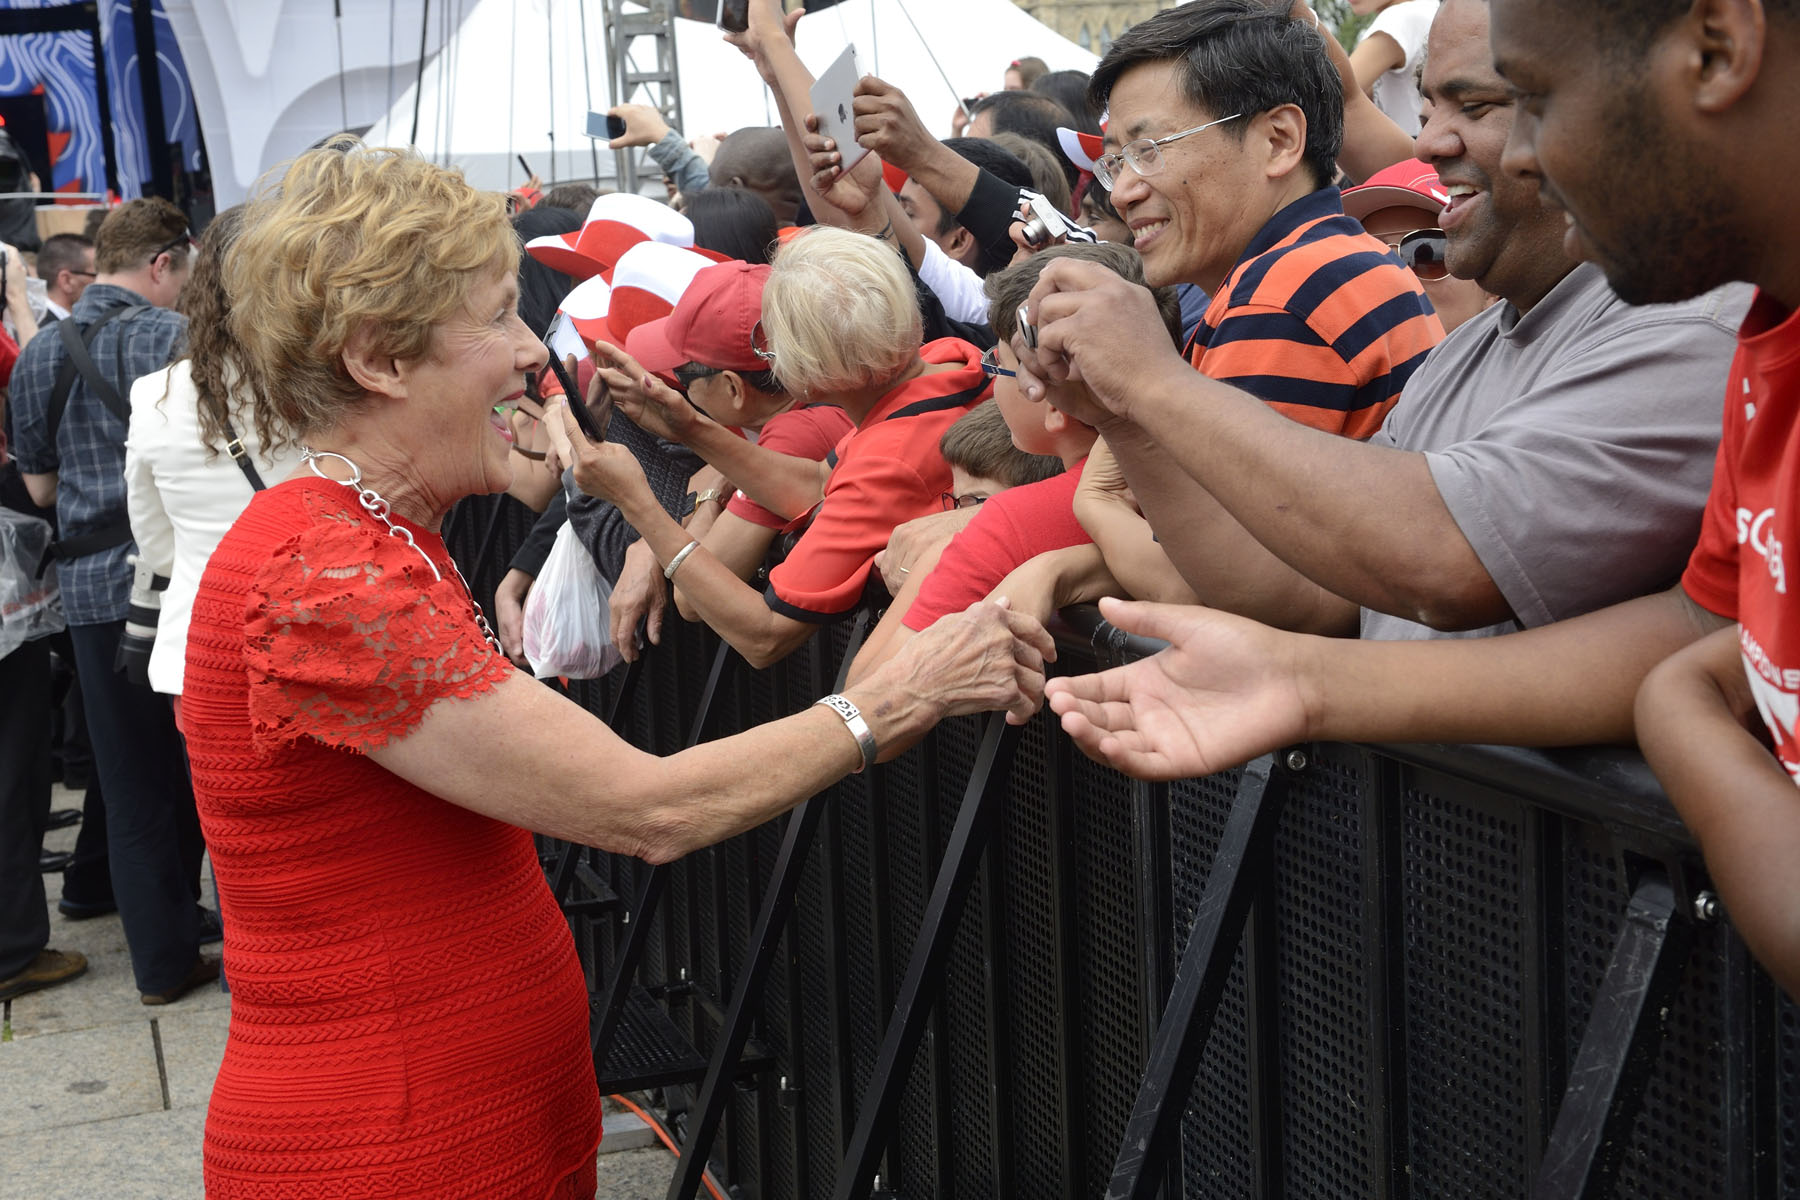 Her Excellency shook hands with people from the crowd gathered on Parliament Hill.